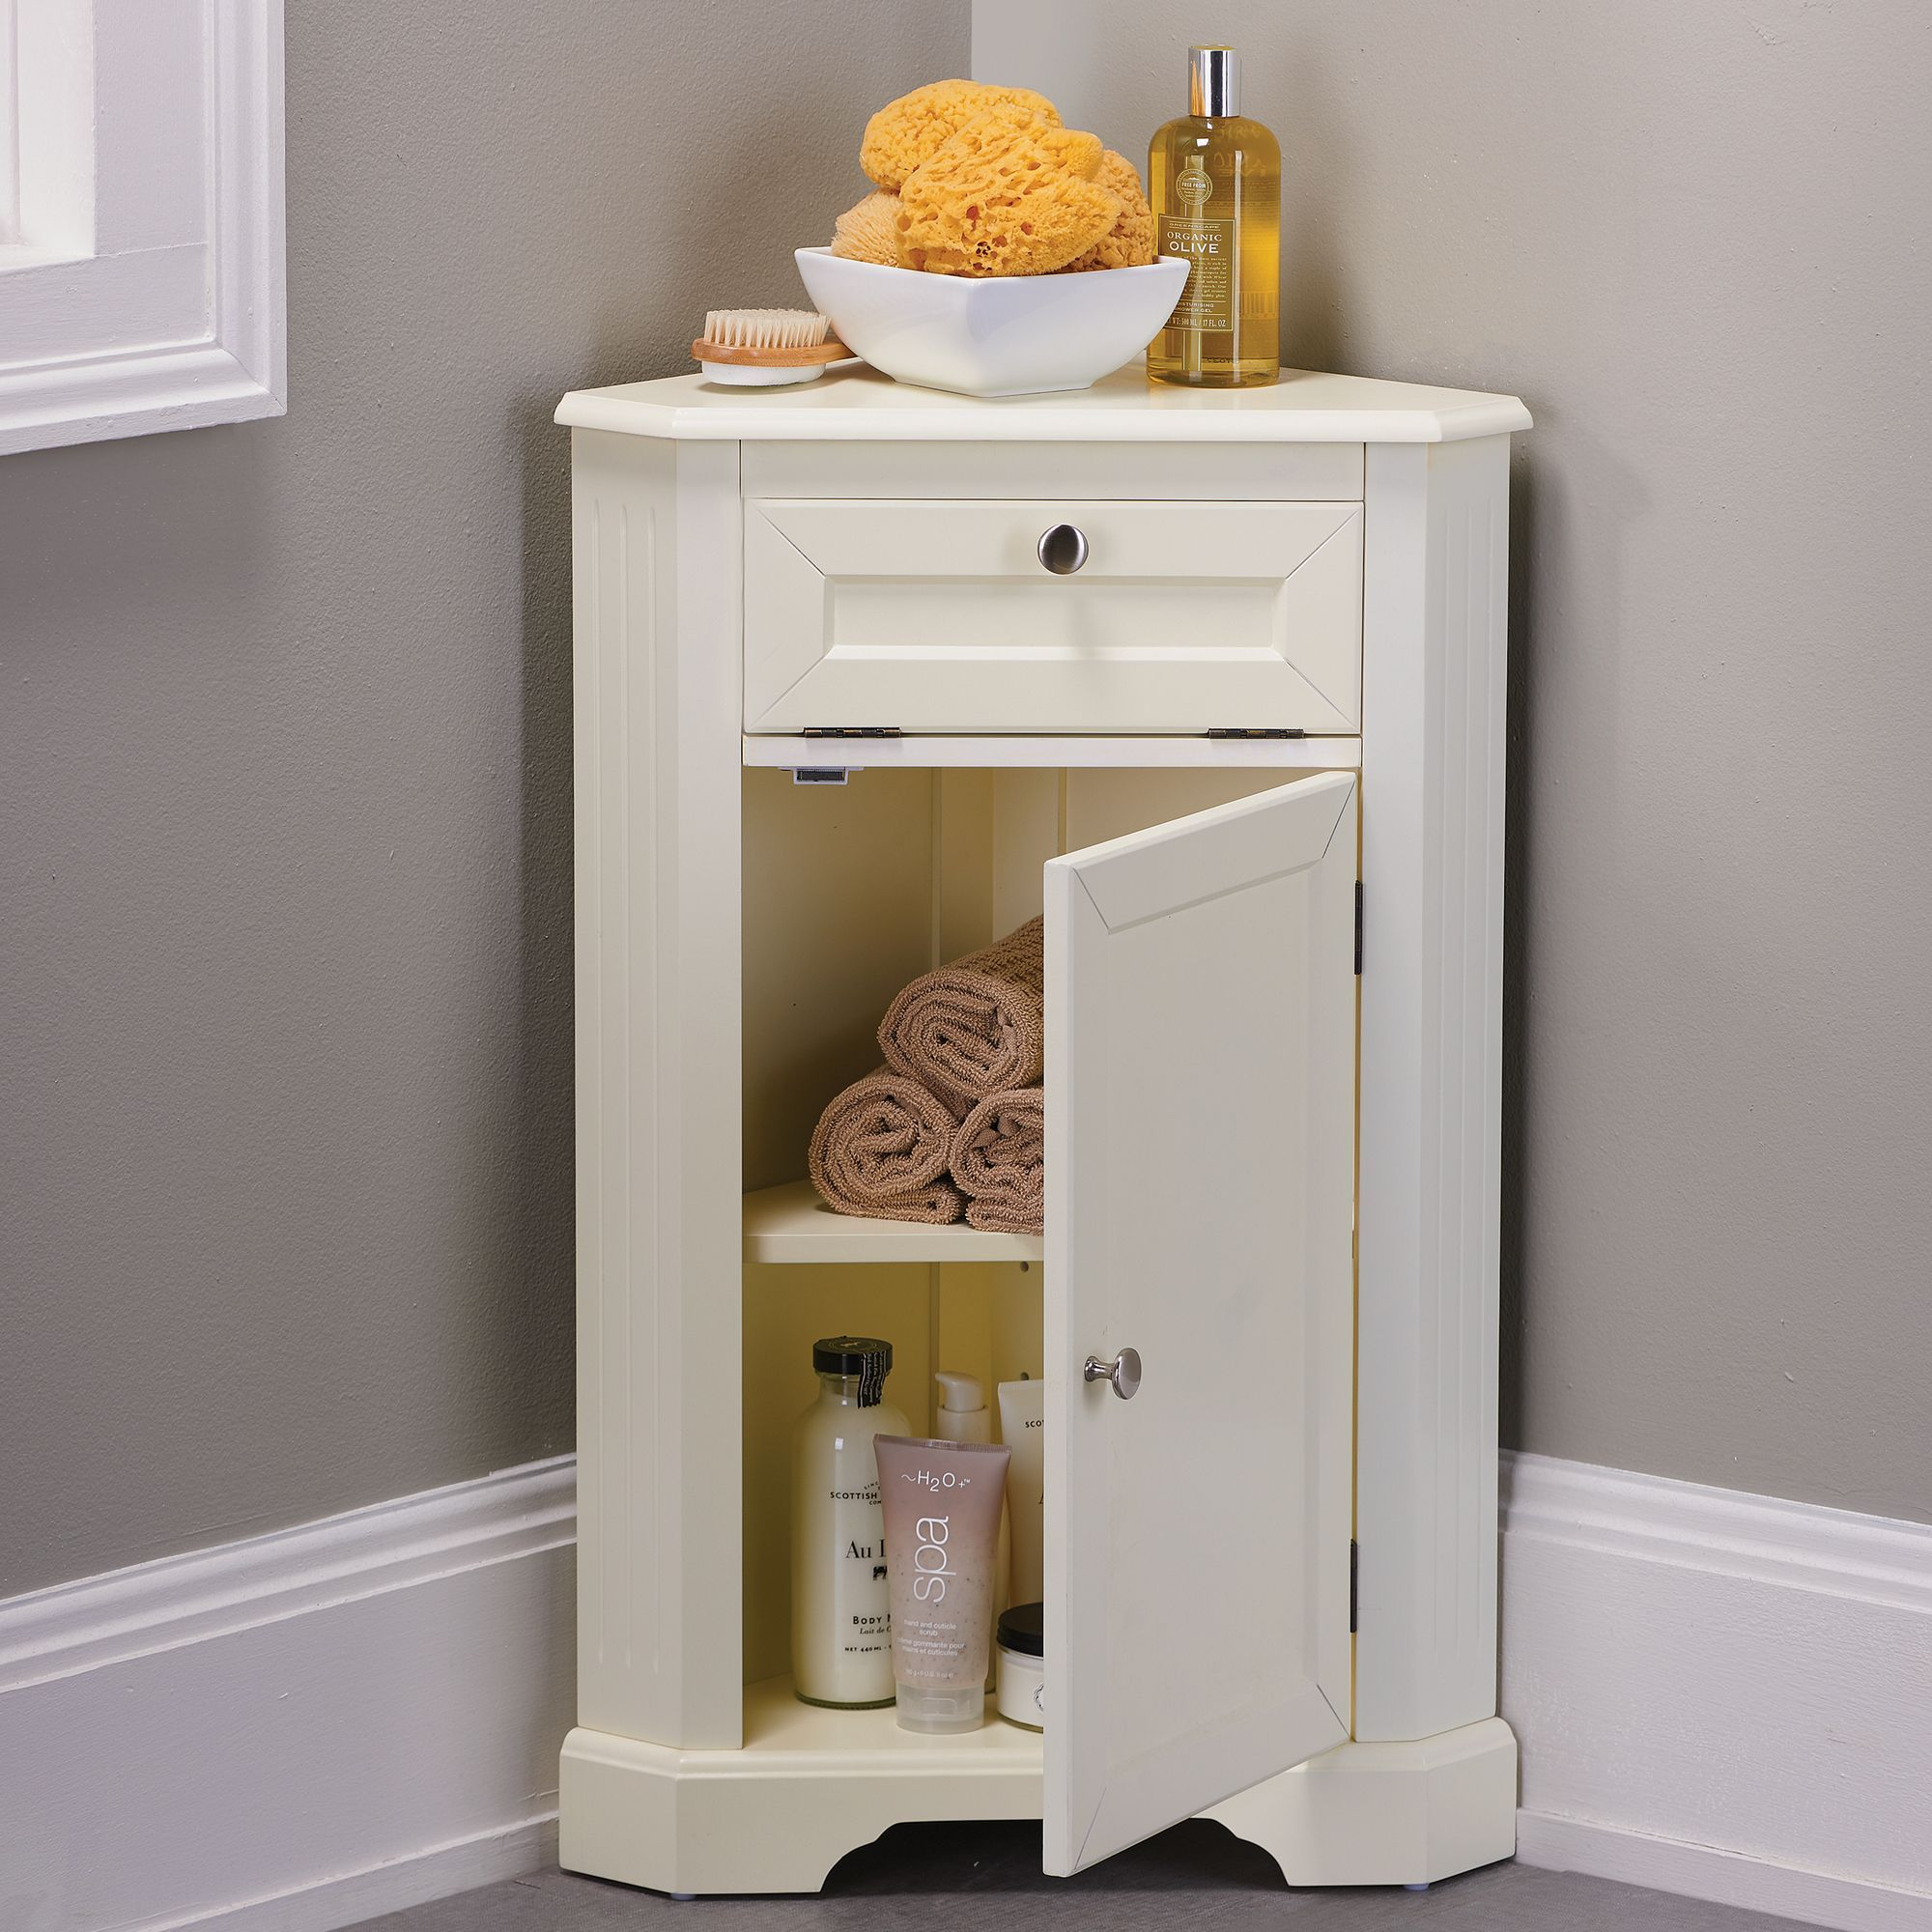 Maximize Storage E In Small Bathrooms With Our Weatherby Corner Cabinet Bathroom Cabinets Provide Excellent Solutions For